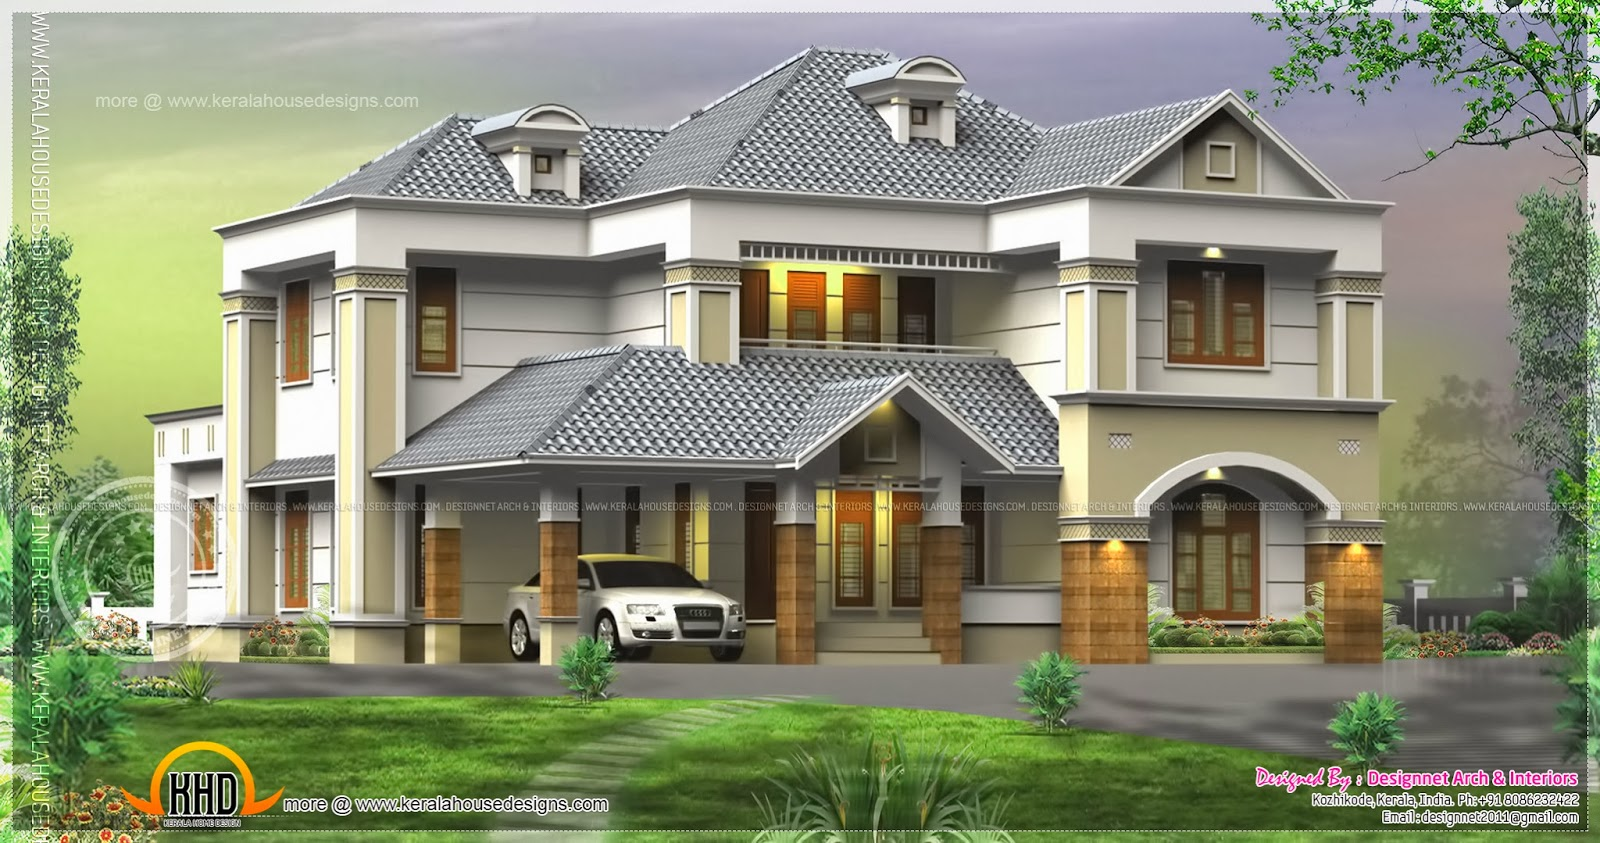 Beautiful Flat Roof House Design In 2470 Square Feet Keralahousedesigns